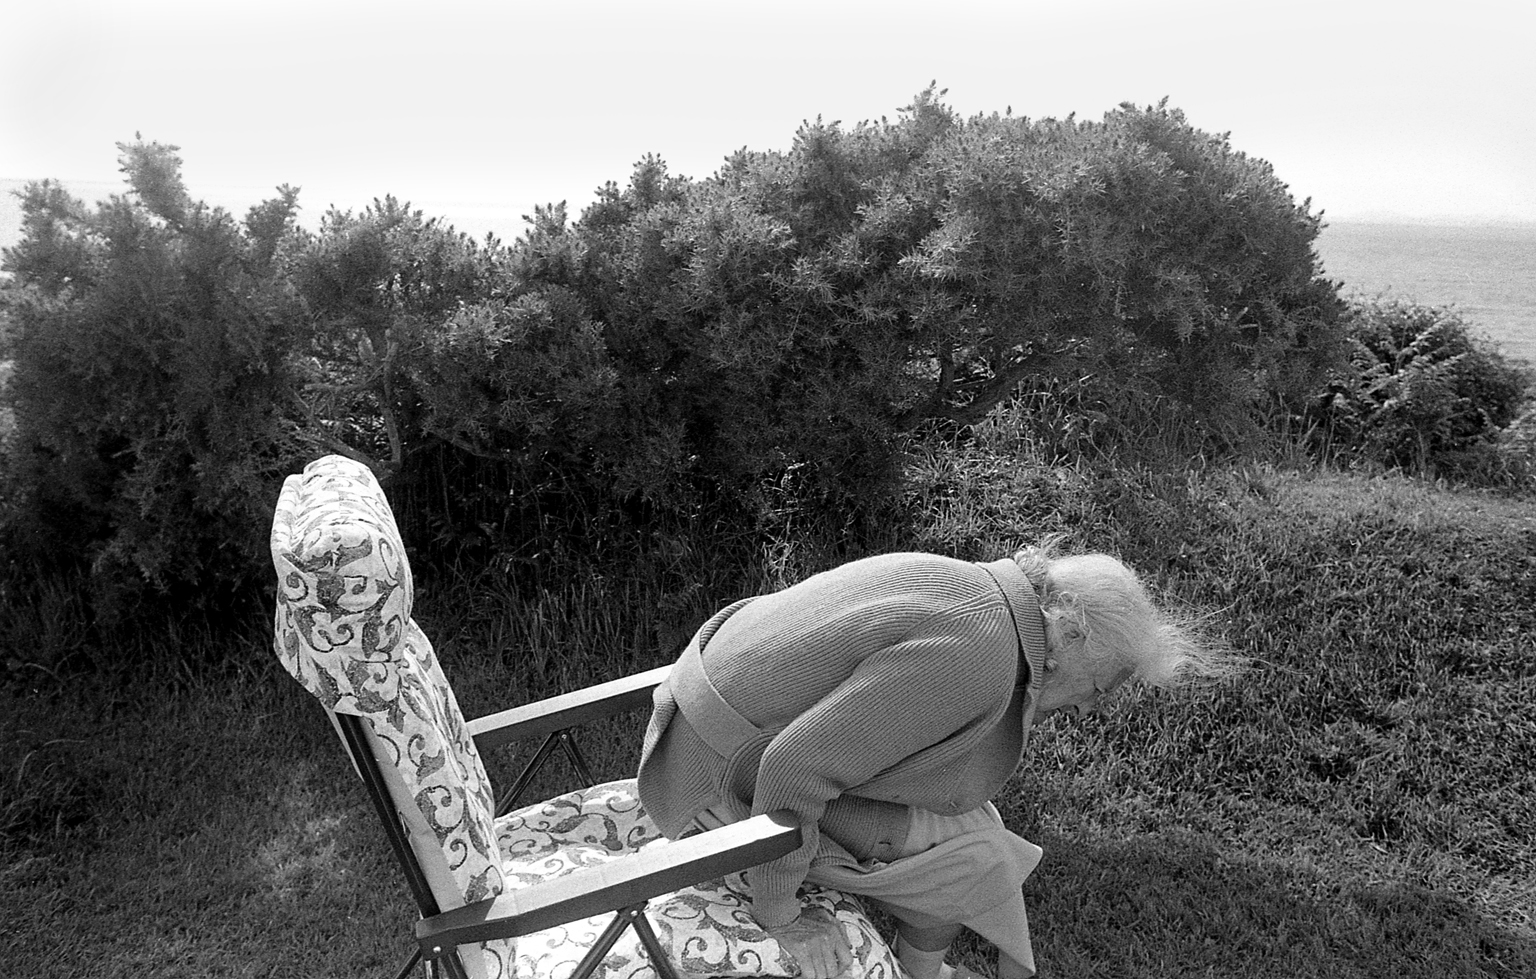 Image from Paddy Summerfield's Mother and Father series